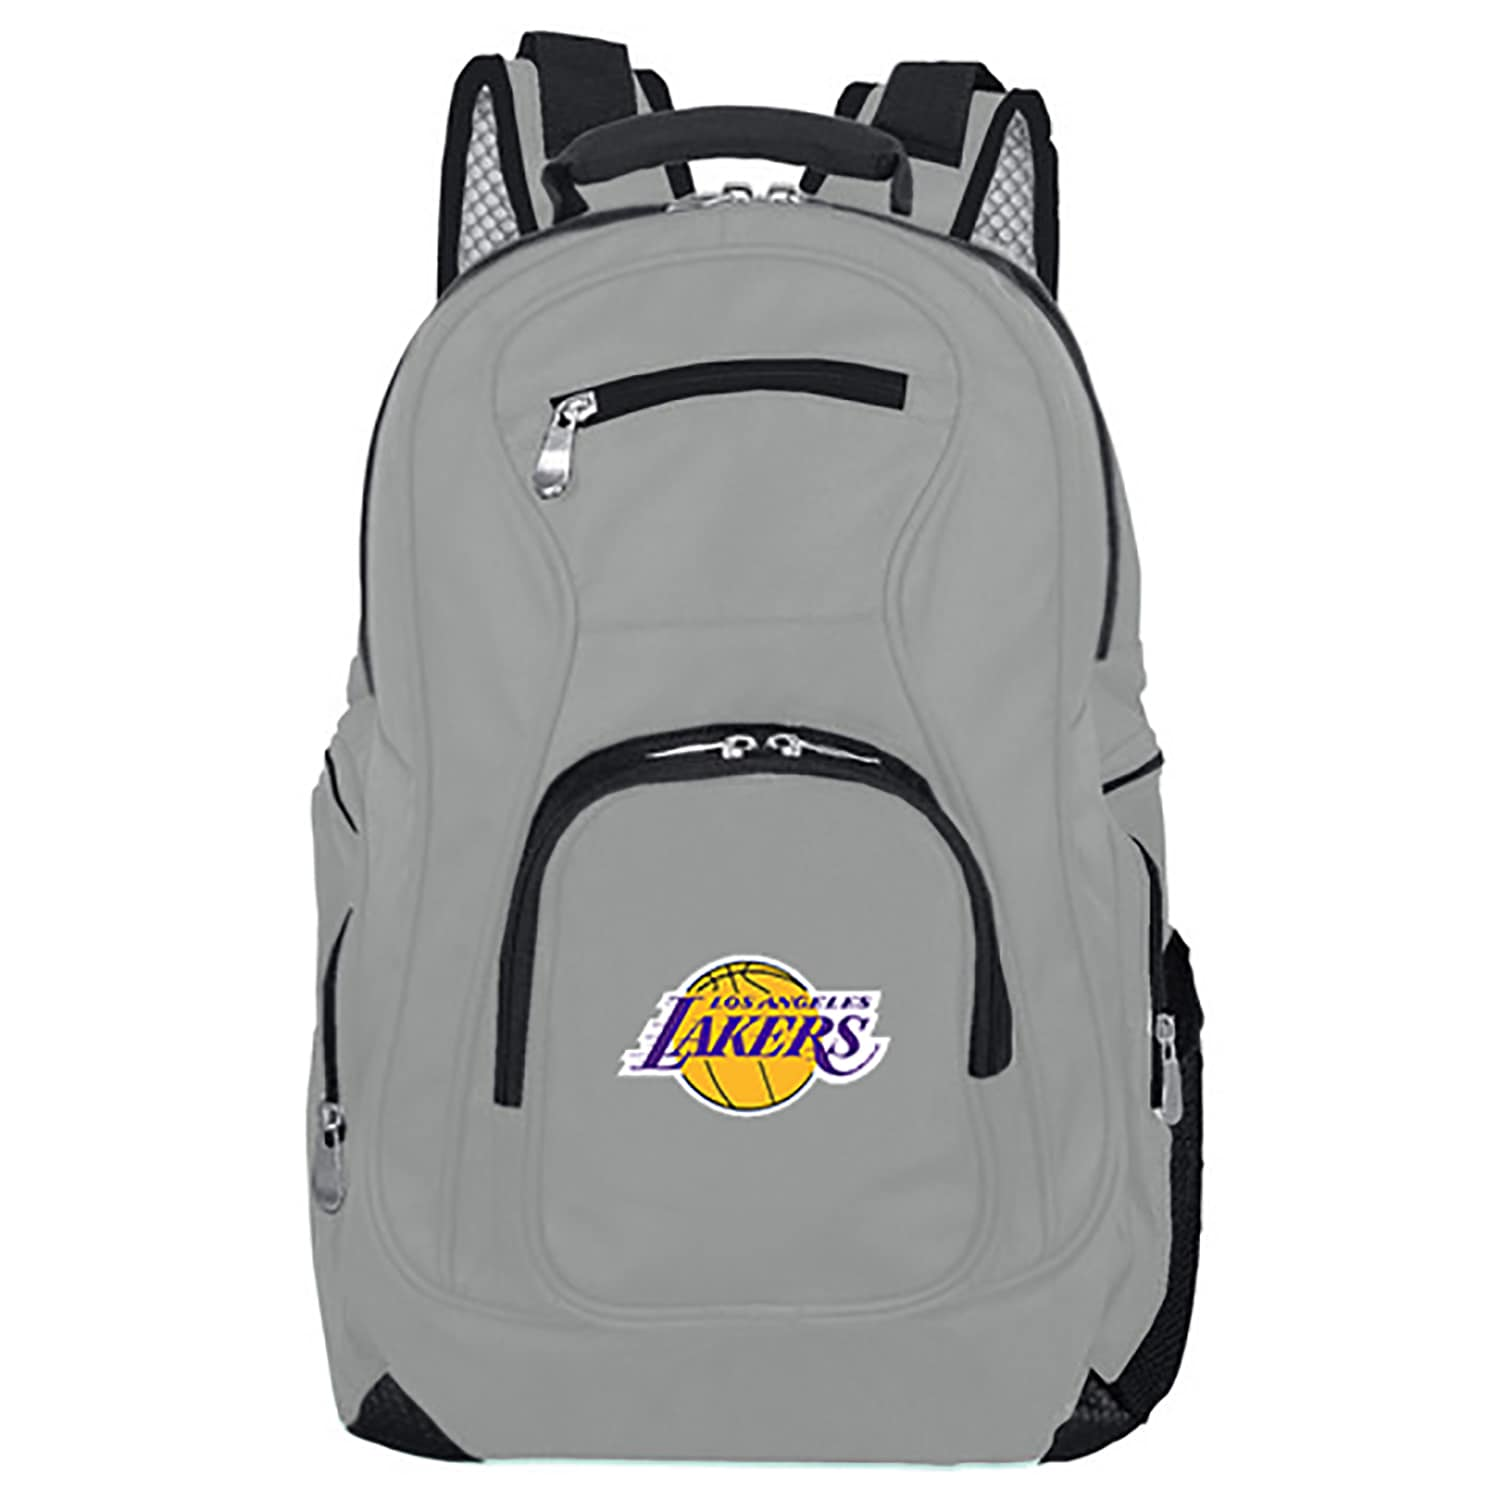 Los Angeles Lakers Backpack Laptop - Gray